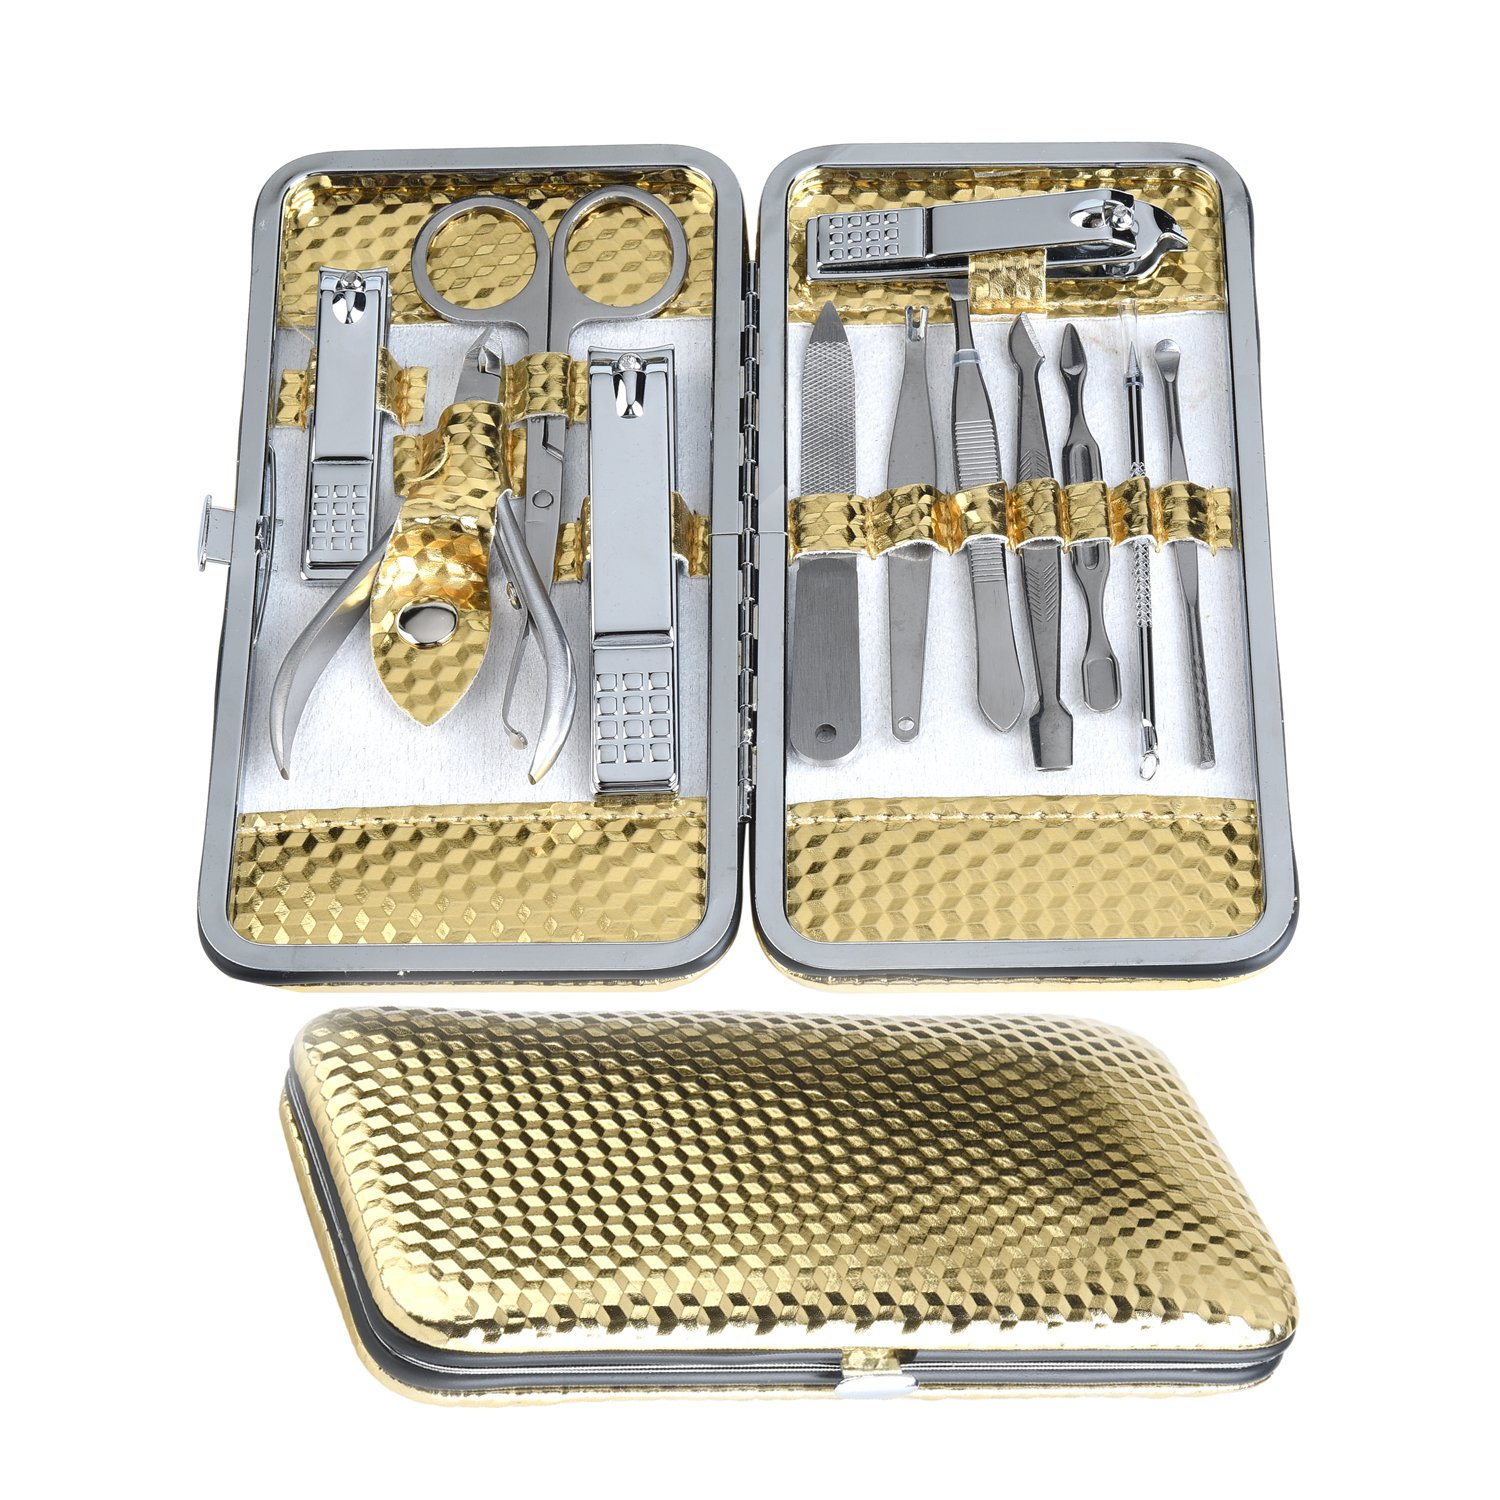 Gizhome Manicure Pedicure Set Nail Clippers- 12 Piece Stainless Steel Manicure Kit, Professional Grooming Kit, Nail Tools with Luxurious Travel Case (Gold)